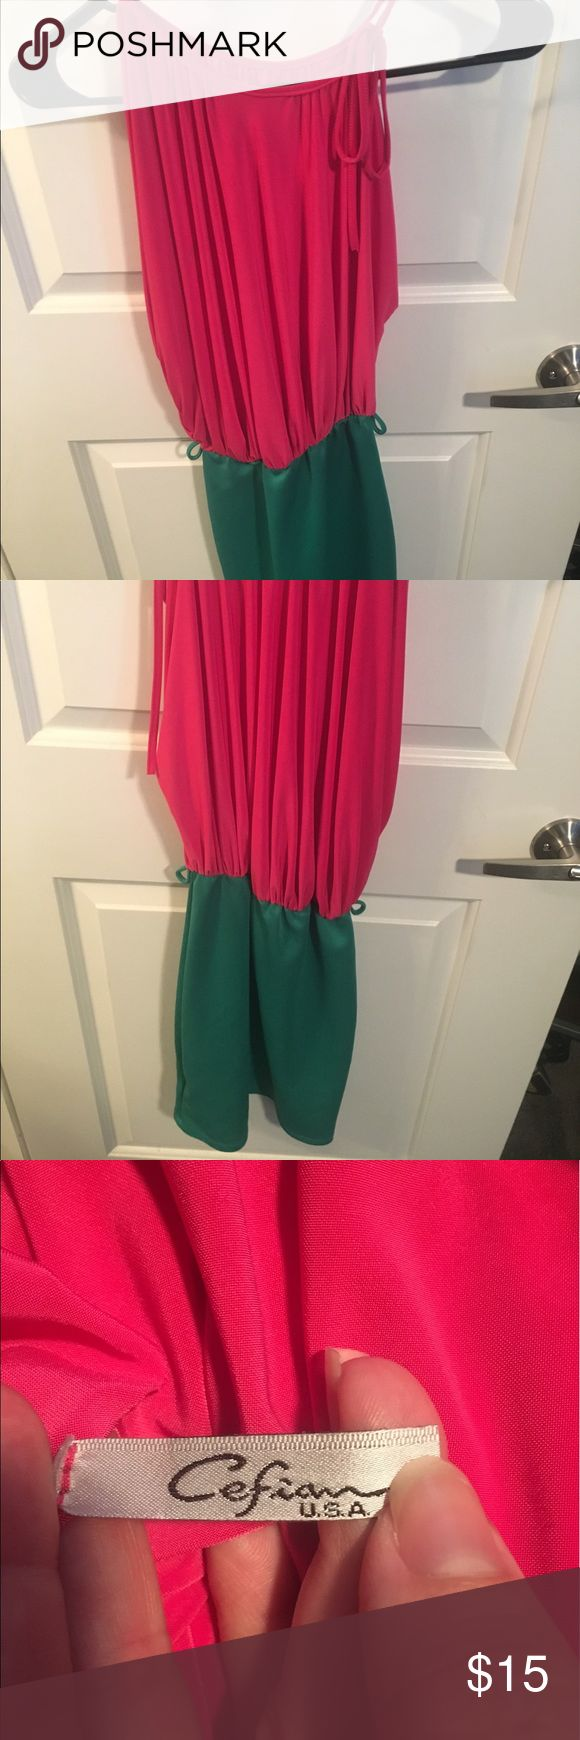 Pink and green dress Pink and green mini dress, only worn a few times. There are loop holes for a belt even though one was not included. Dress is very stretchy and flattering, one shoulder is able to be adjusted for different sizing. Message me regarding alternative payment, packages and trades Dresses Asymmetrical